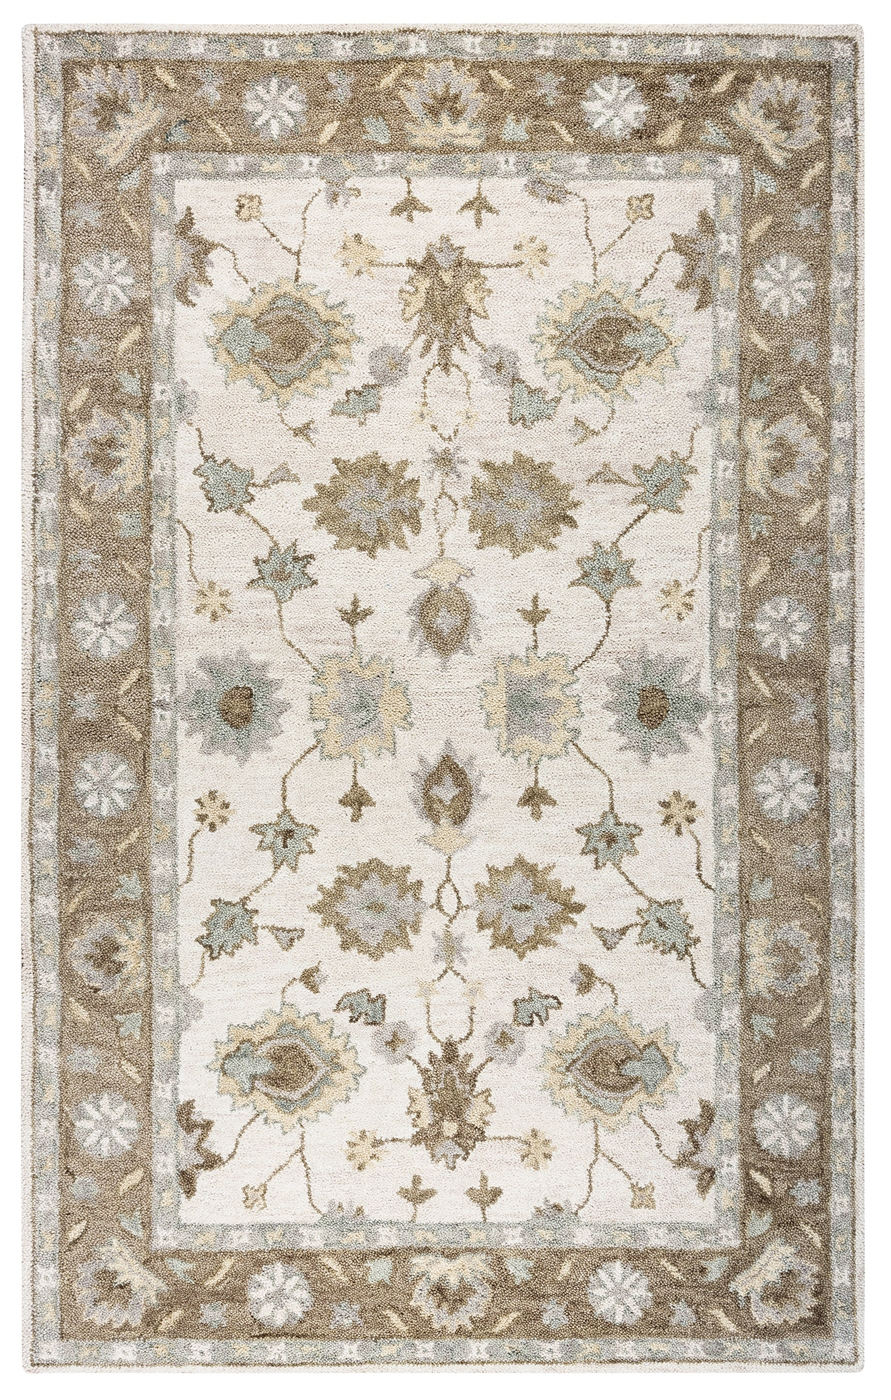 Leone Bordered Vines Wool Area Rug In Natural  Brown 9